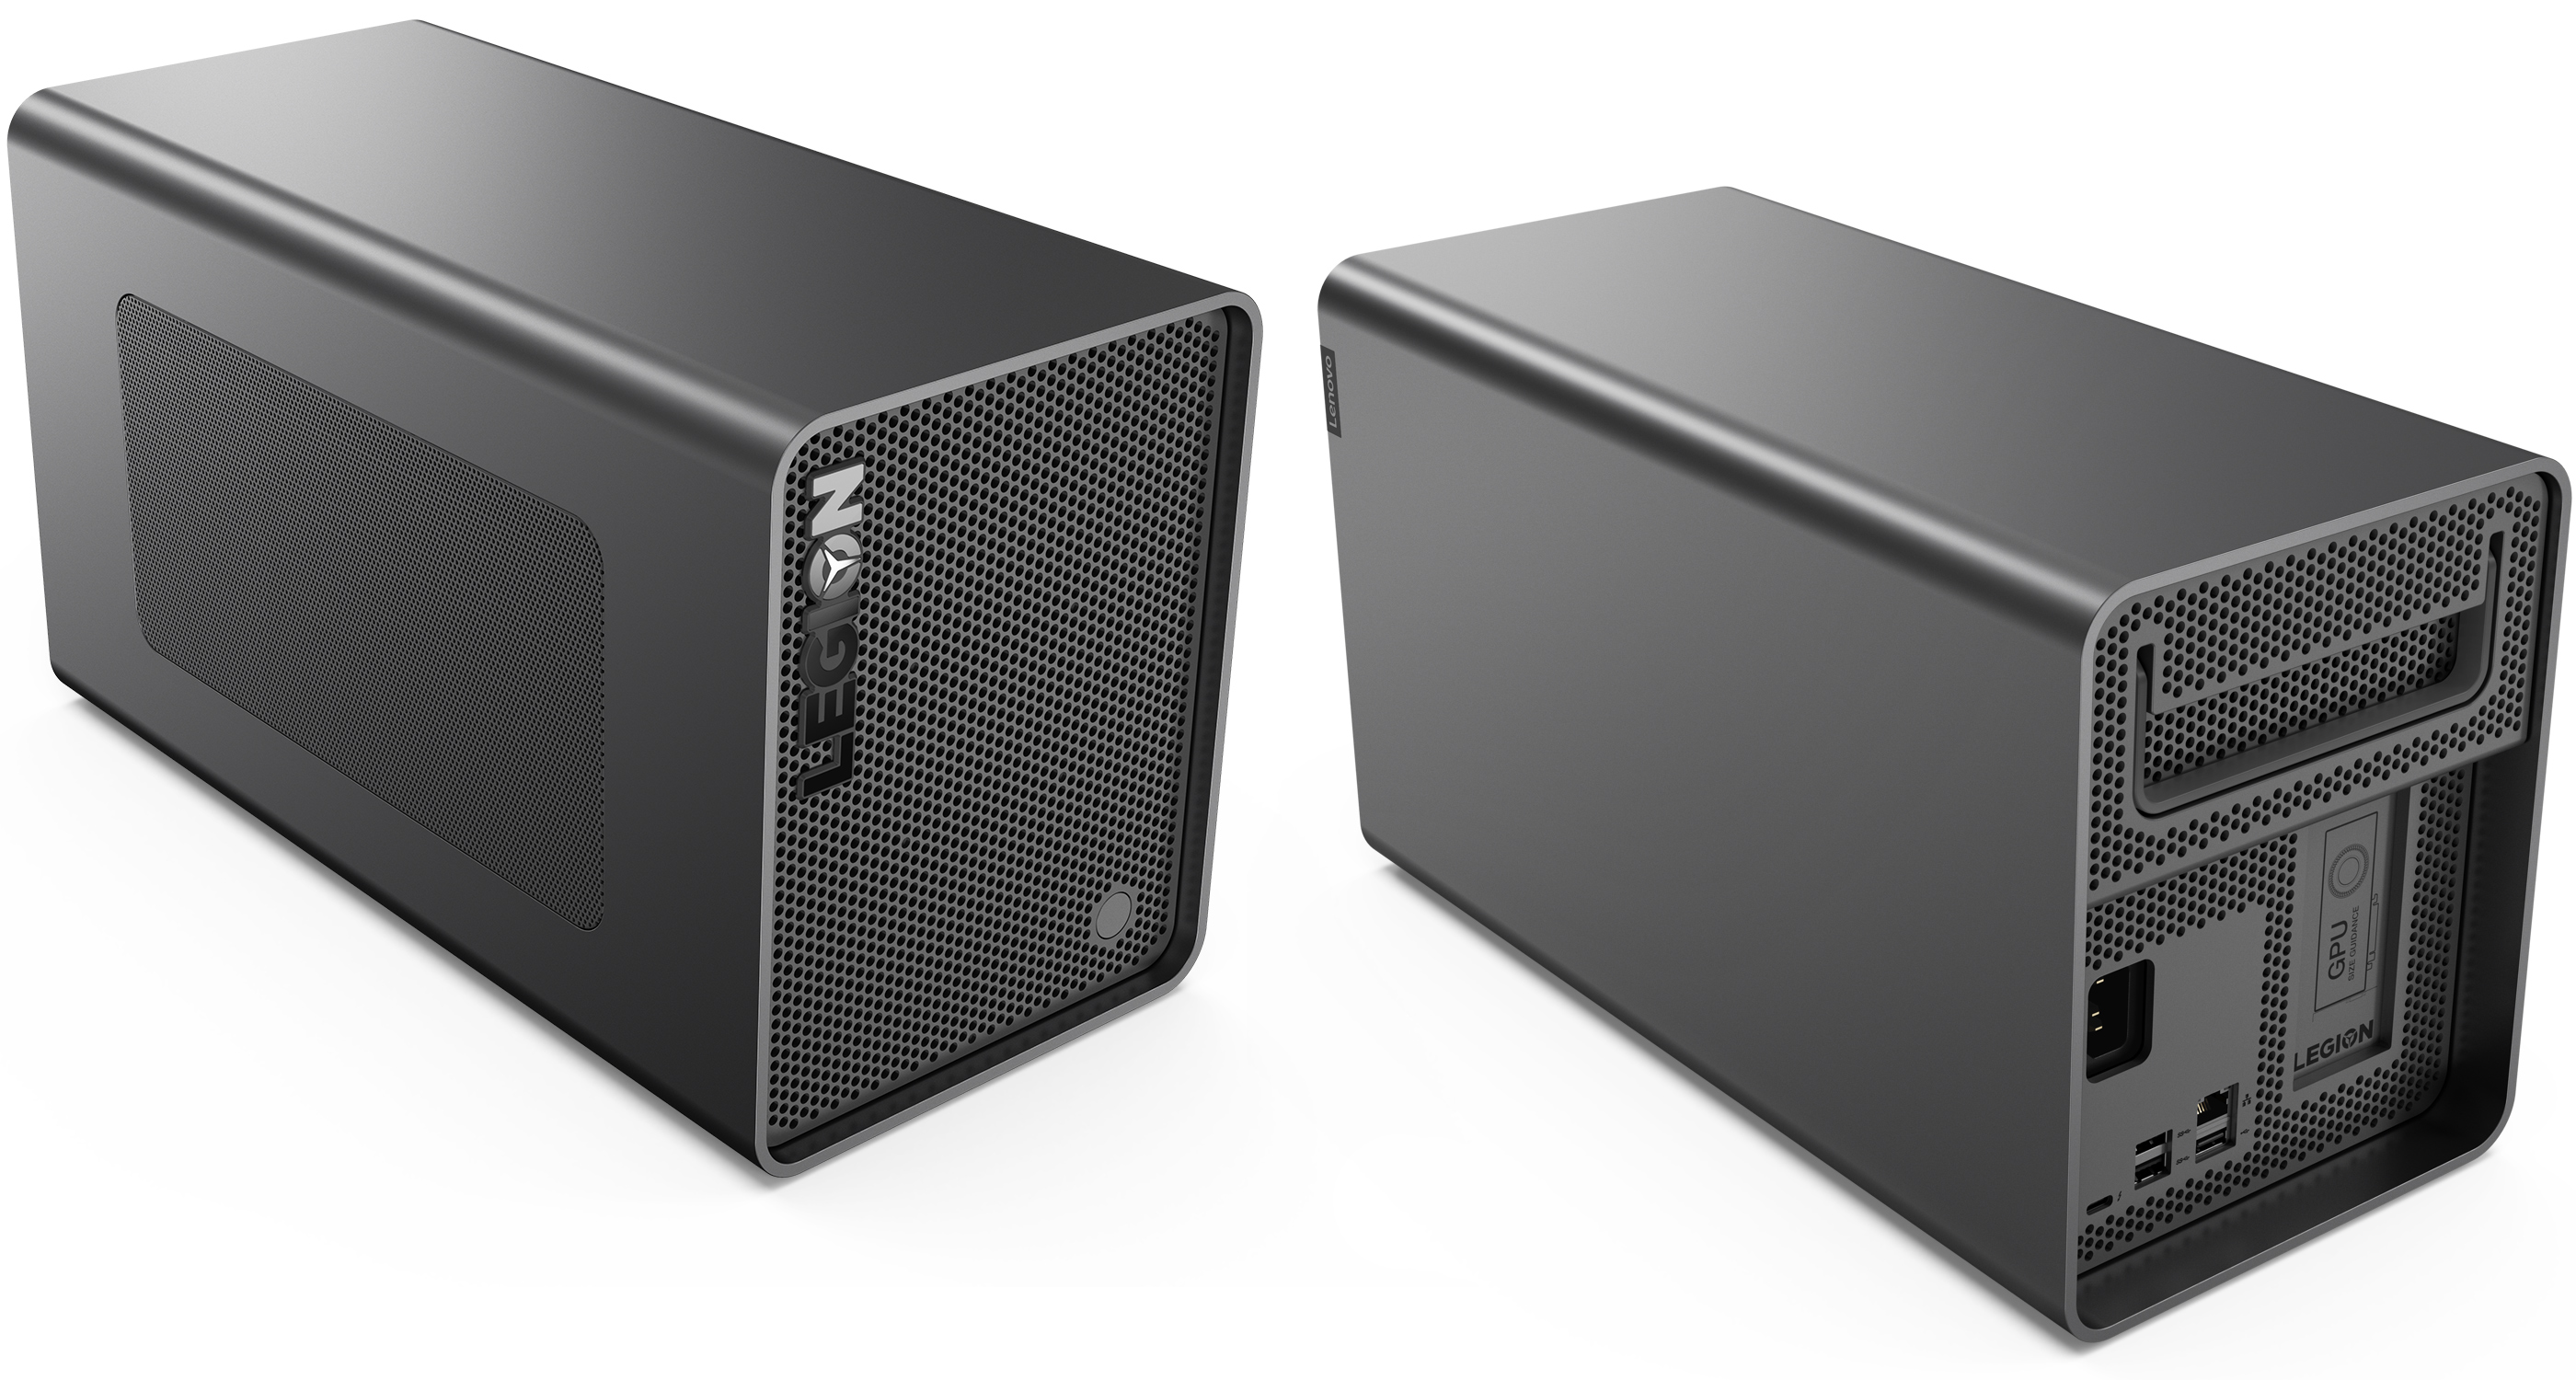 CES 2020: Lenovo Legion Y740s gaming laptop and Legion BoostStation eGPU announced